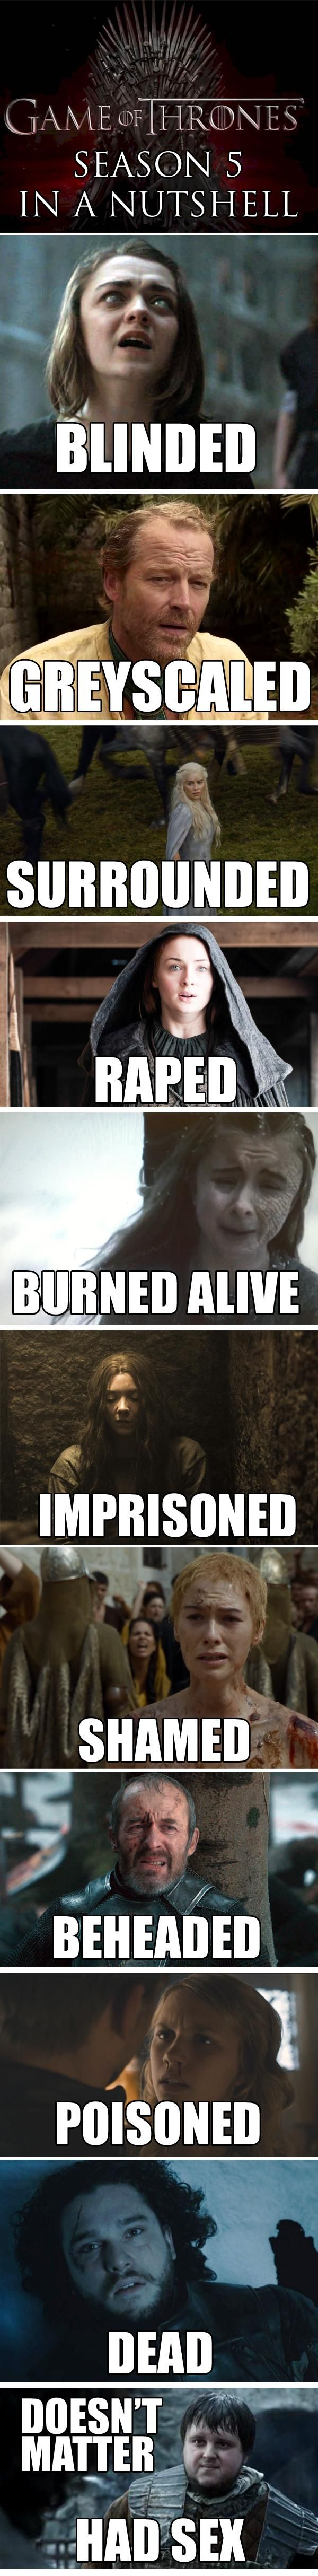 Game of Thrones Season 5 in a Nutshell - Imgur